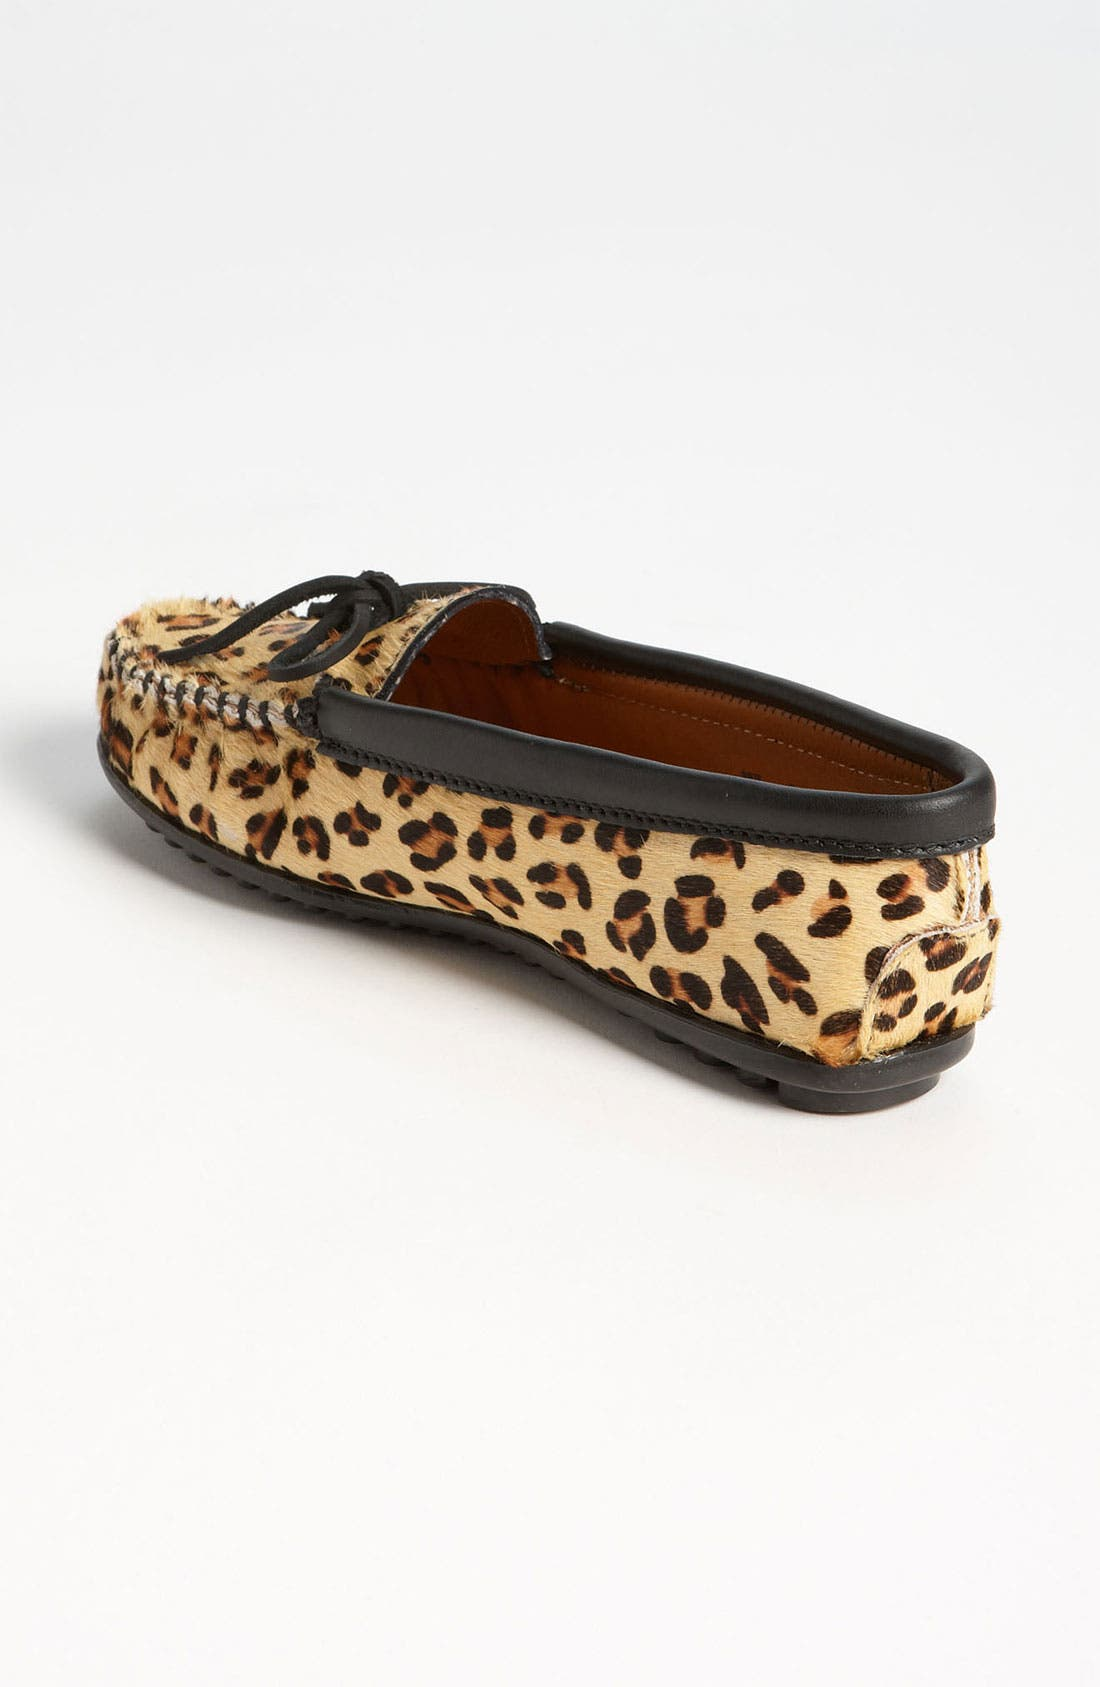 Alternate Image 2  - Minnetonka 'Full Leopard' Moccasin